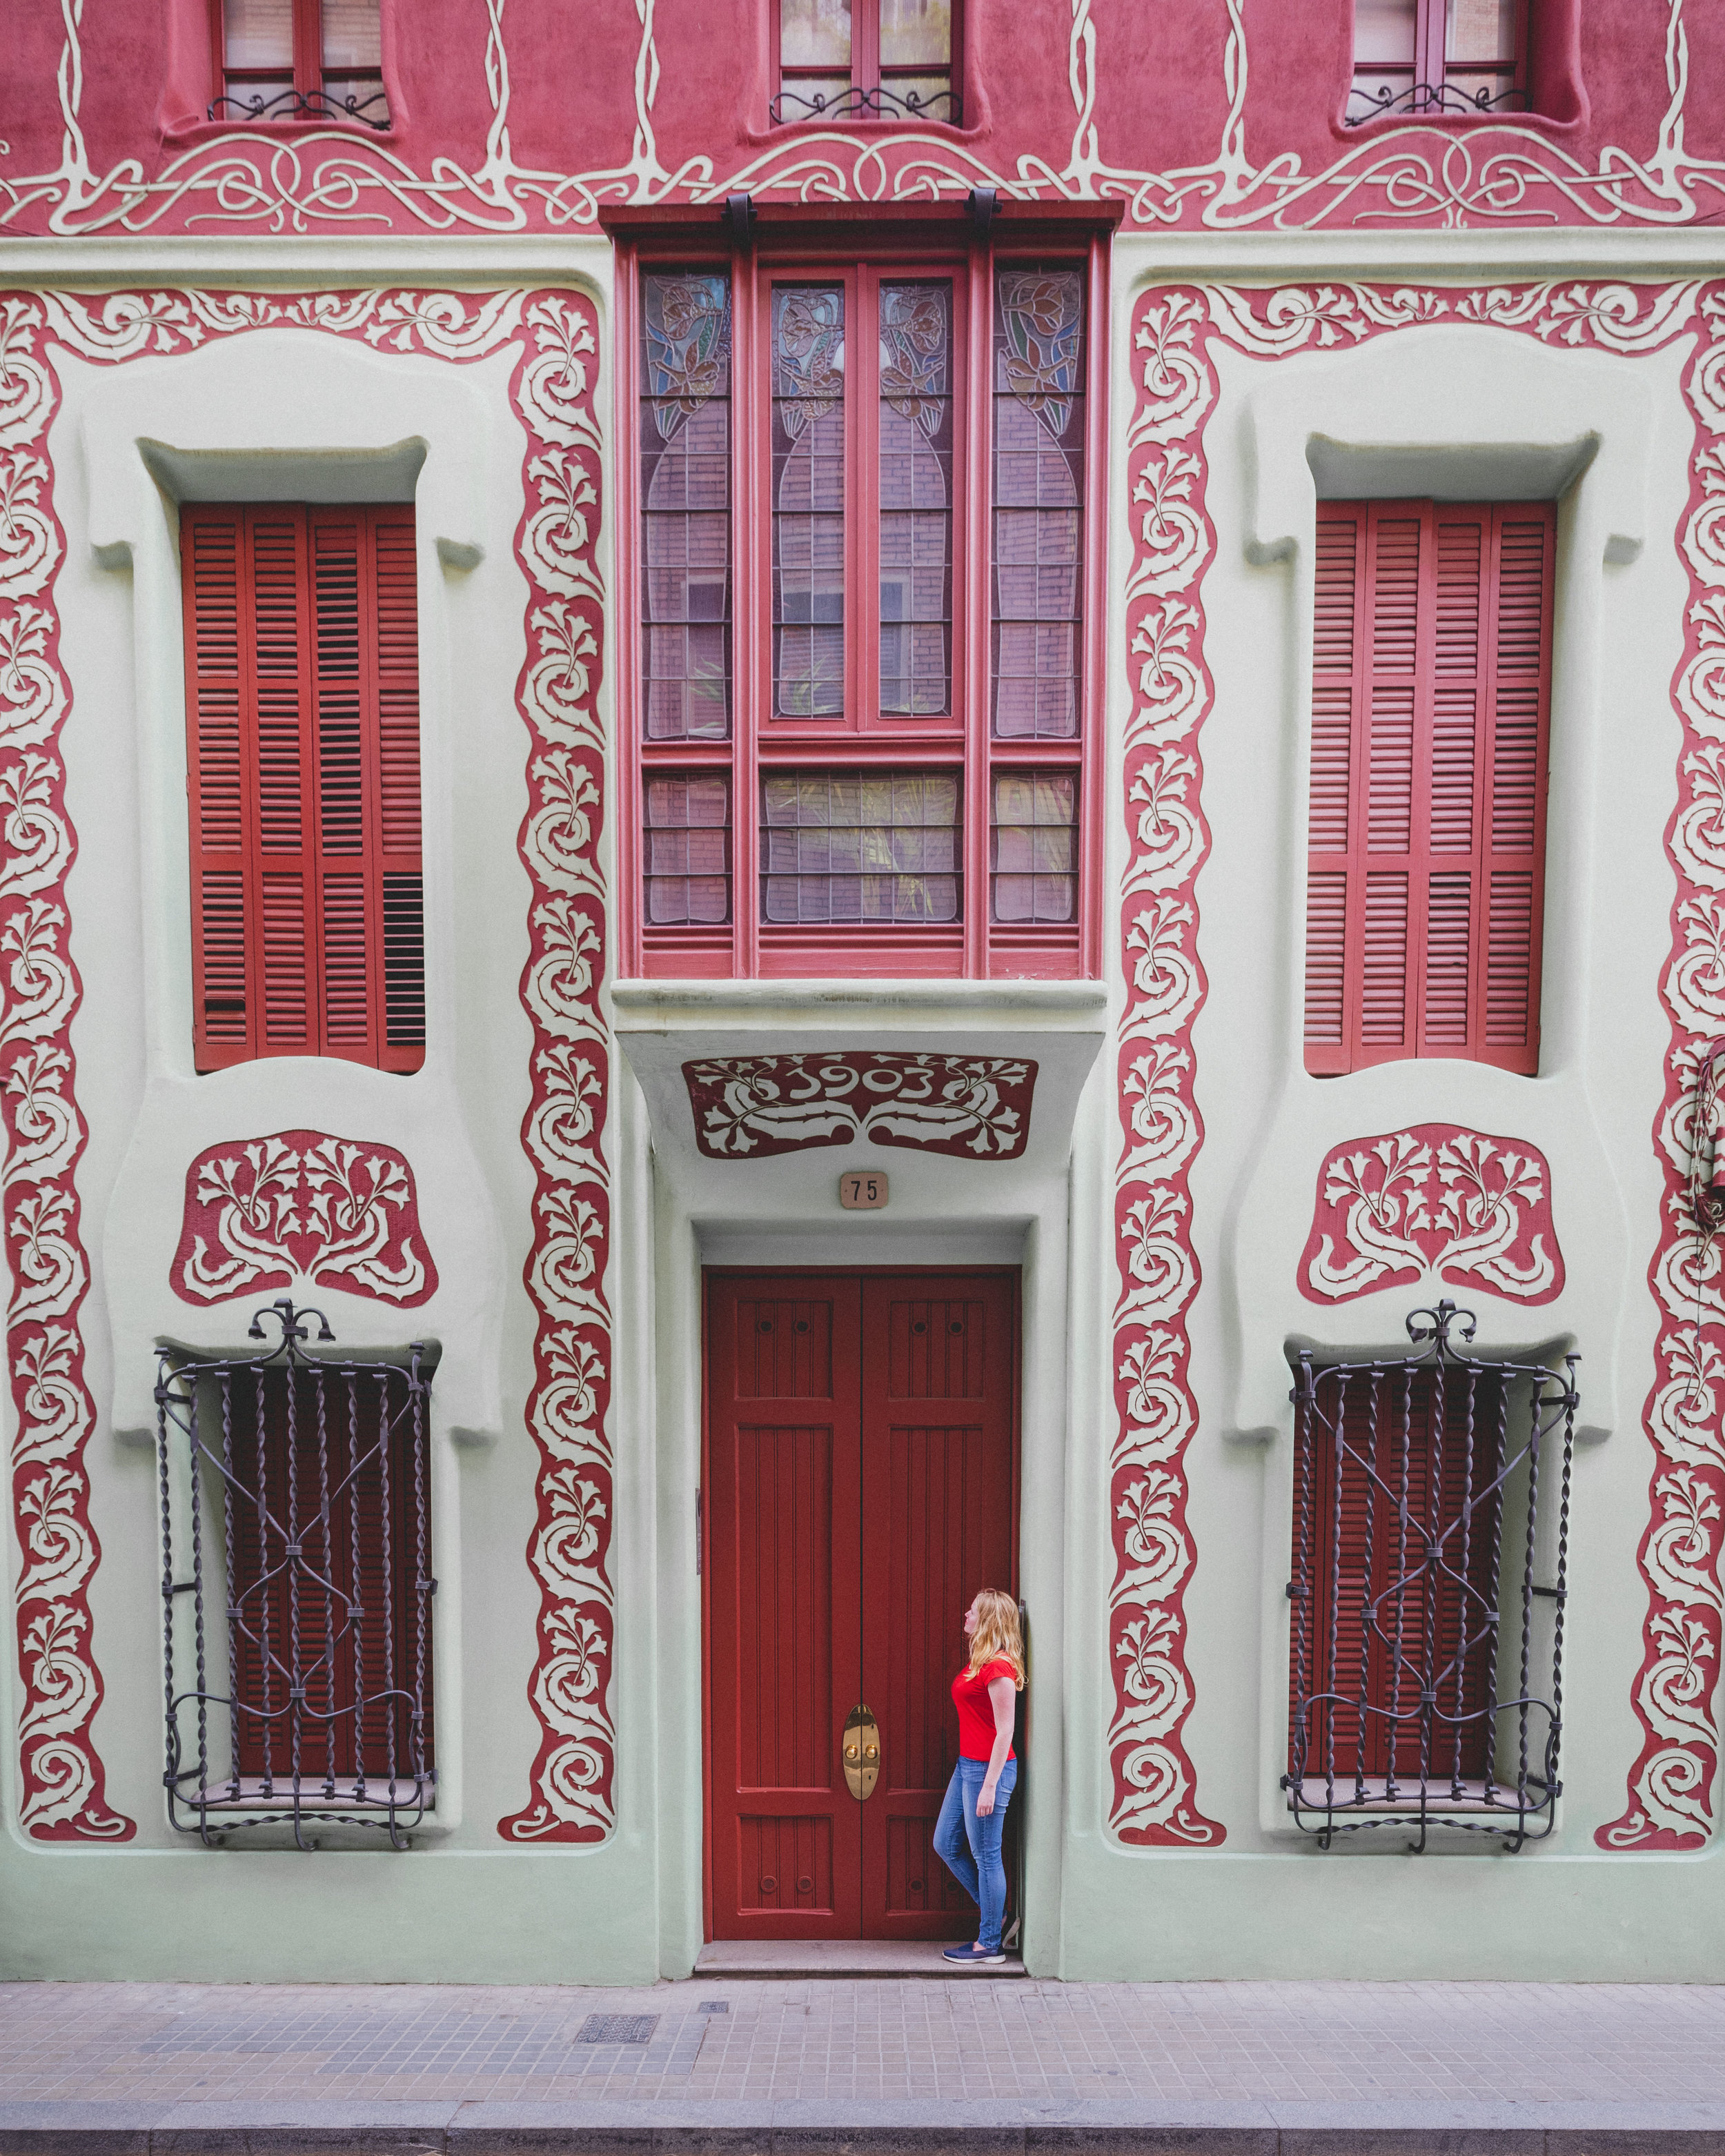 Instagrammable places in Barcelona - The red & White house